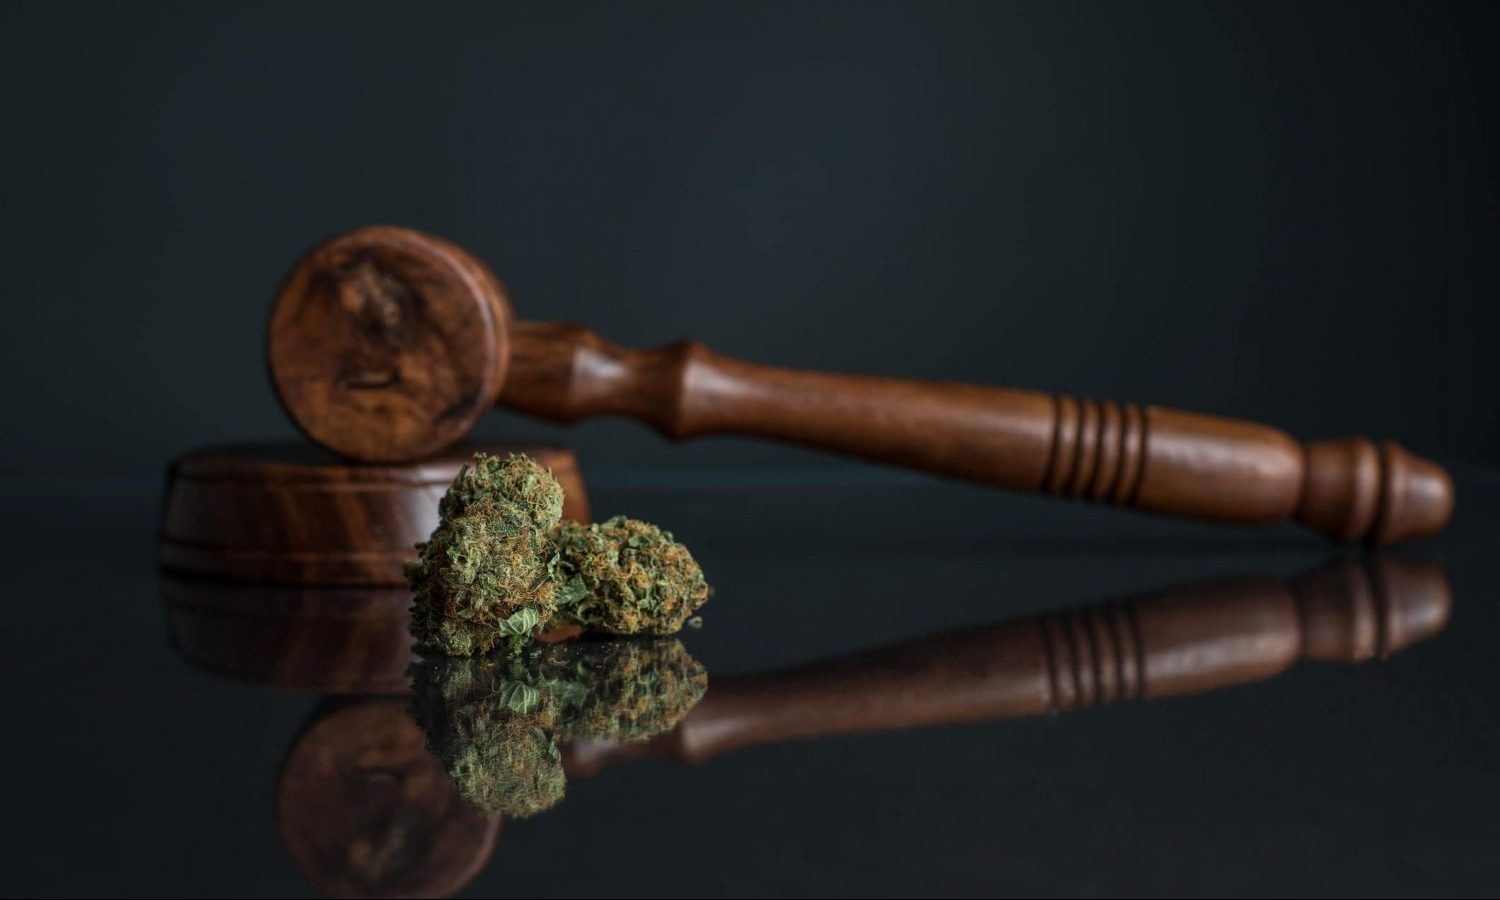 A Right-Leaning Supreme Court Won't Impede Cannabis Reform, Legal Experts Say